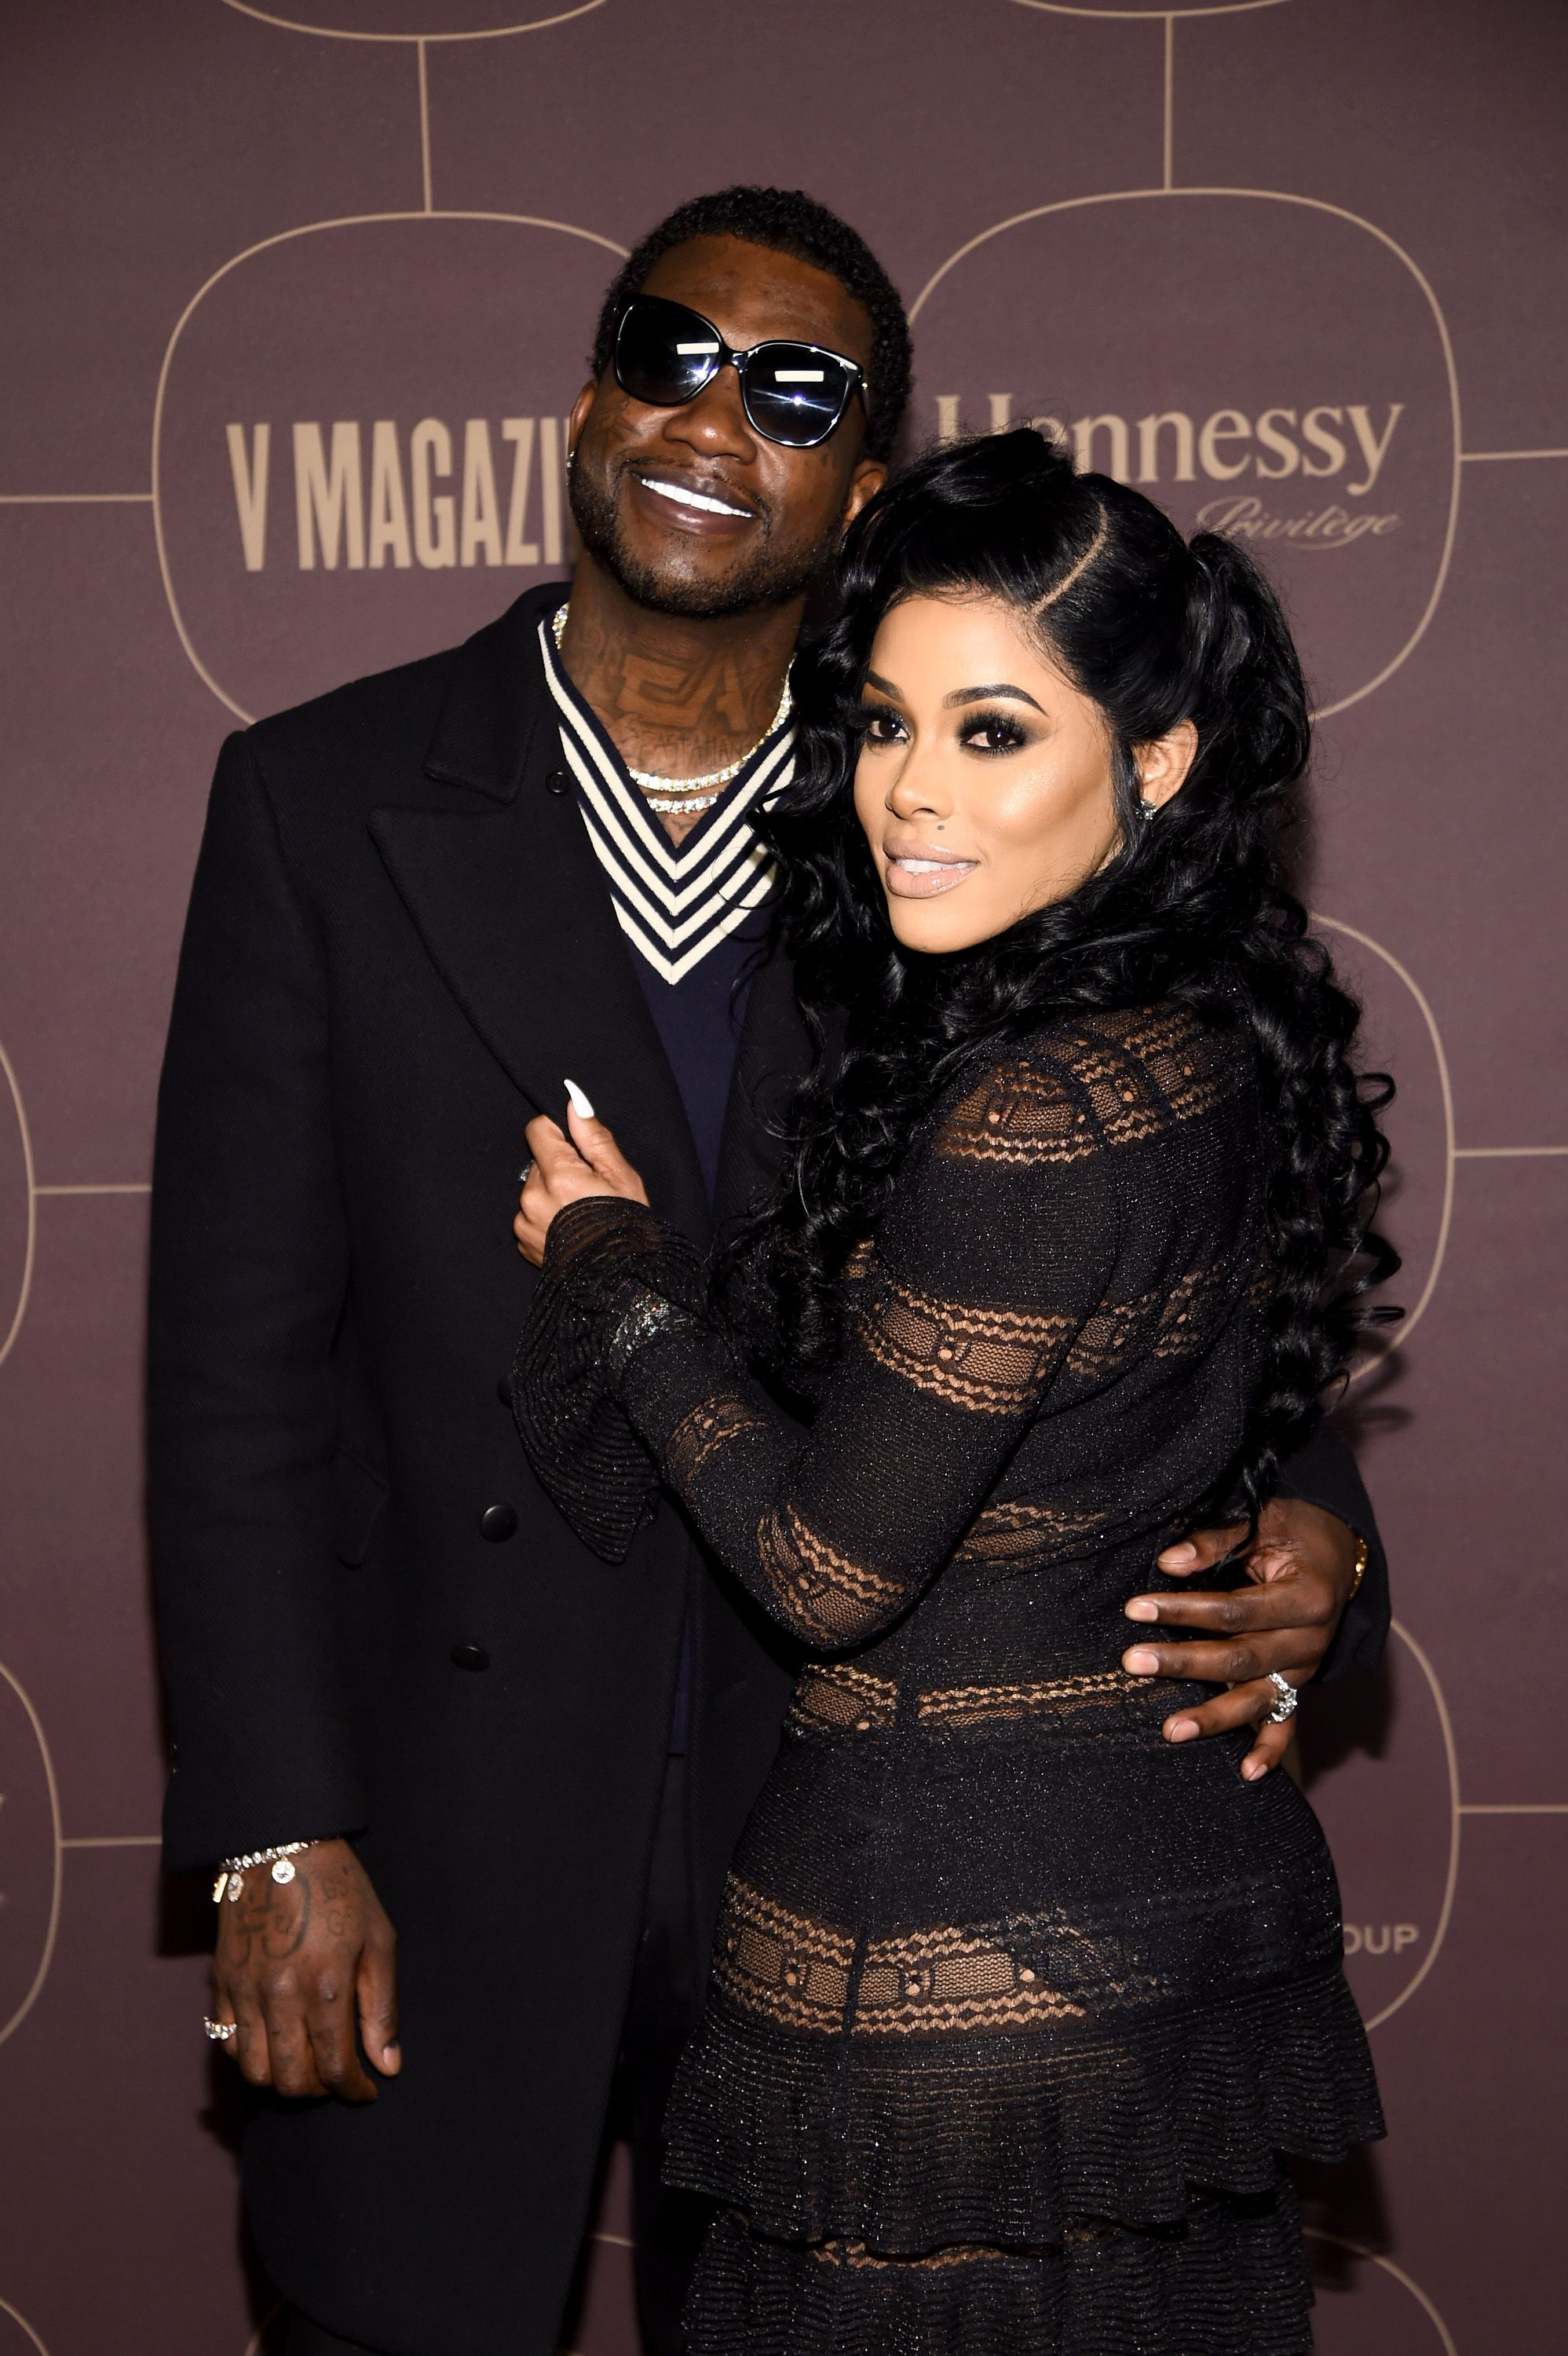 Gucci Mane and Keyshia Ka'oir at the Pre-Grammy Party on January 25, 2018 in New York. │Photo: Getty Images